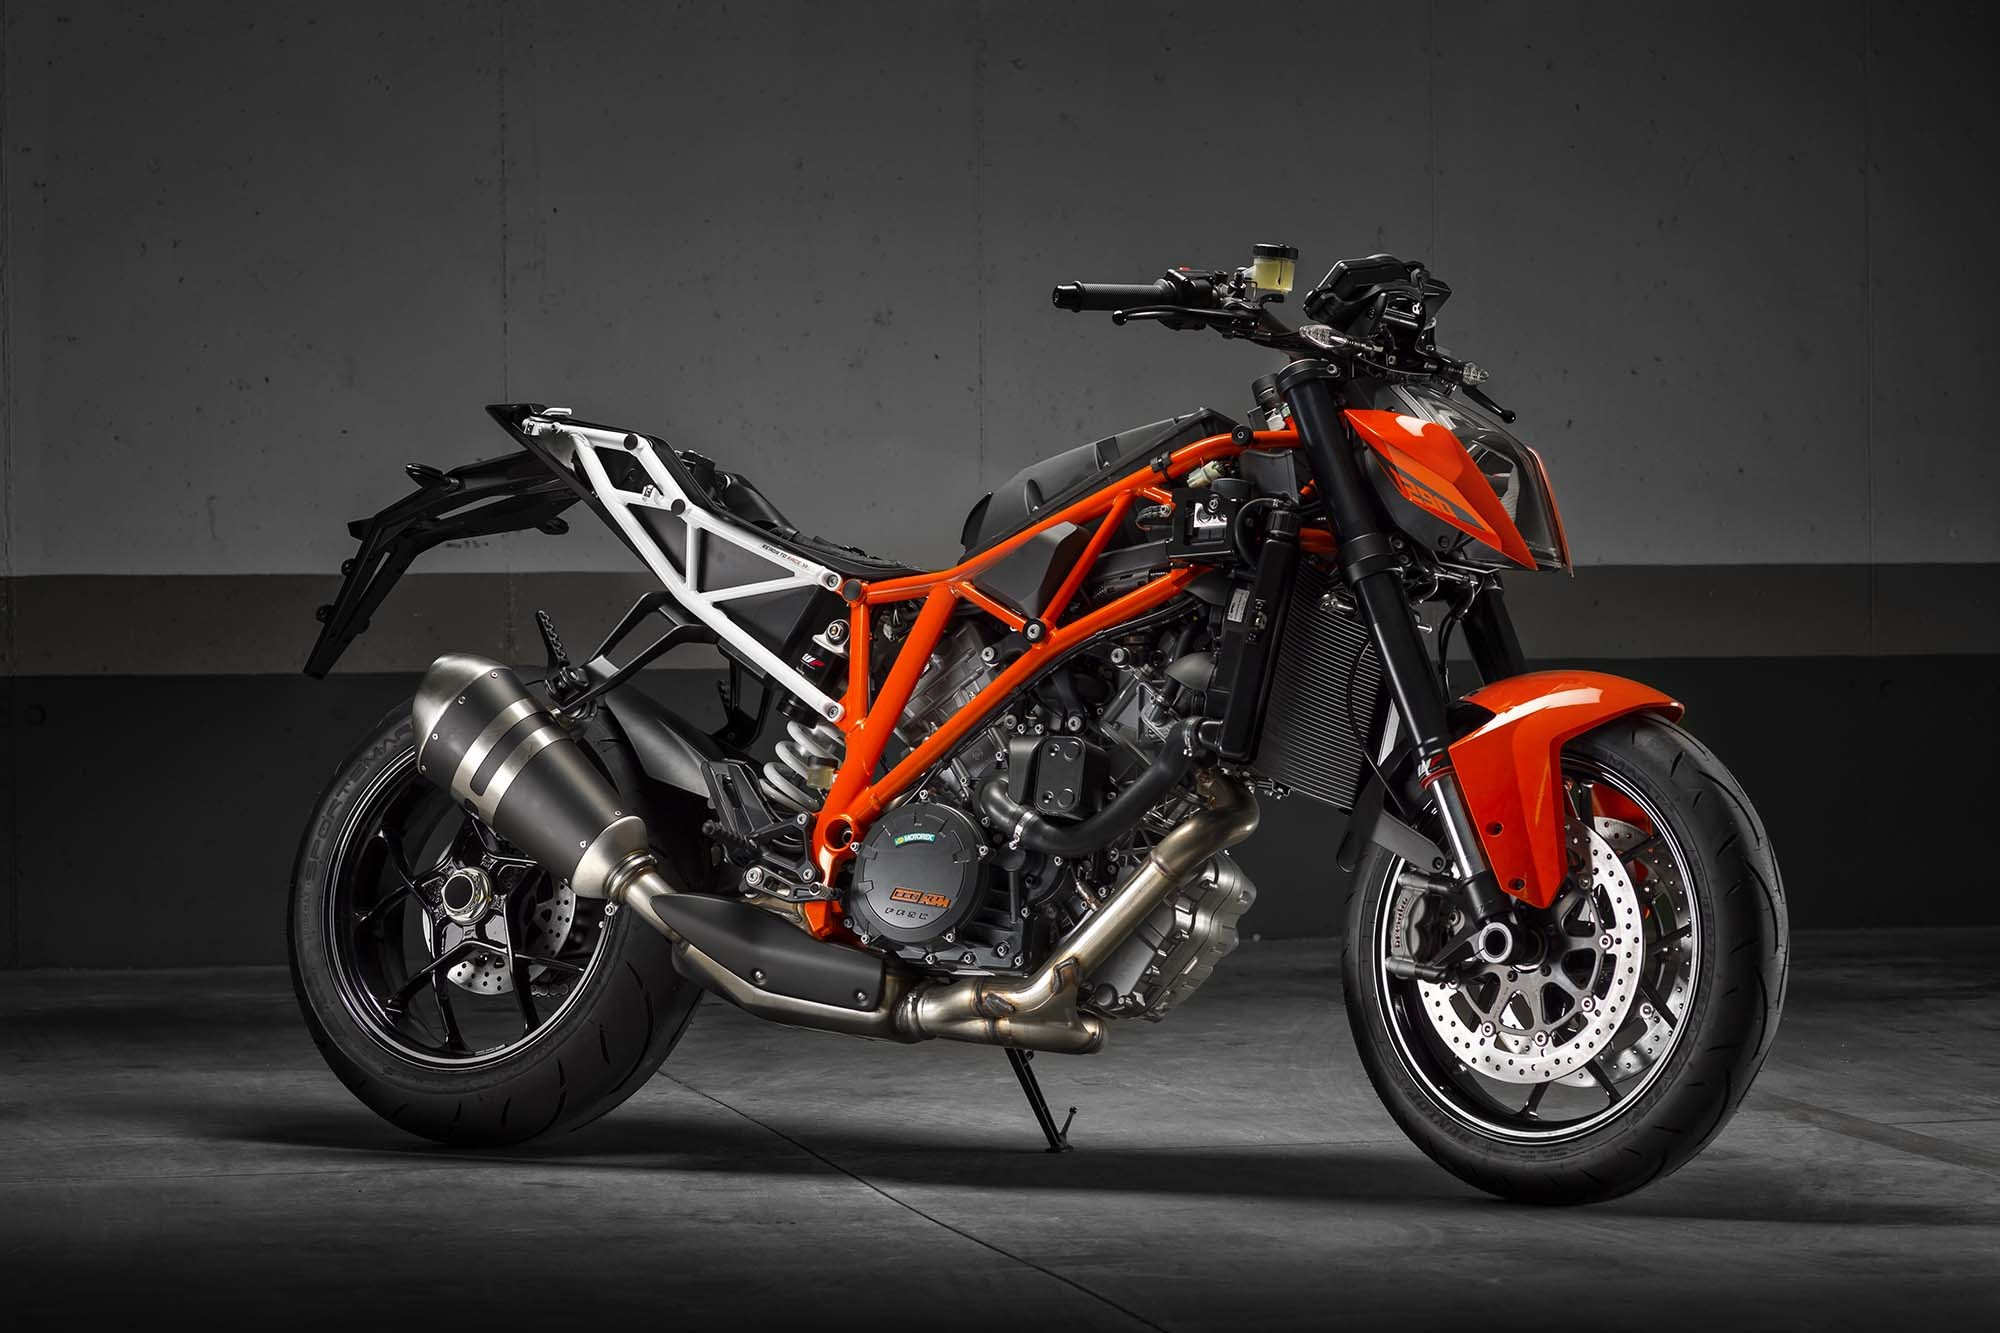 ktm 1290 super duke r abs 2014 unleash the beast india. Black Bedroom Furniture Sets. Home Design Ideas